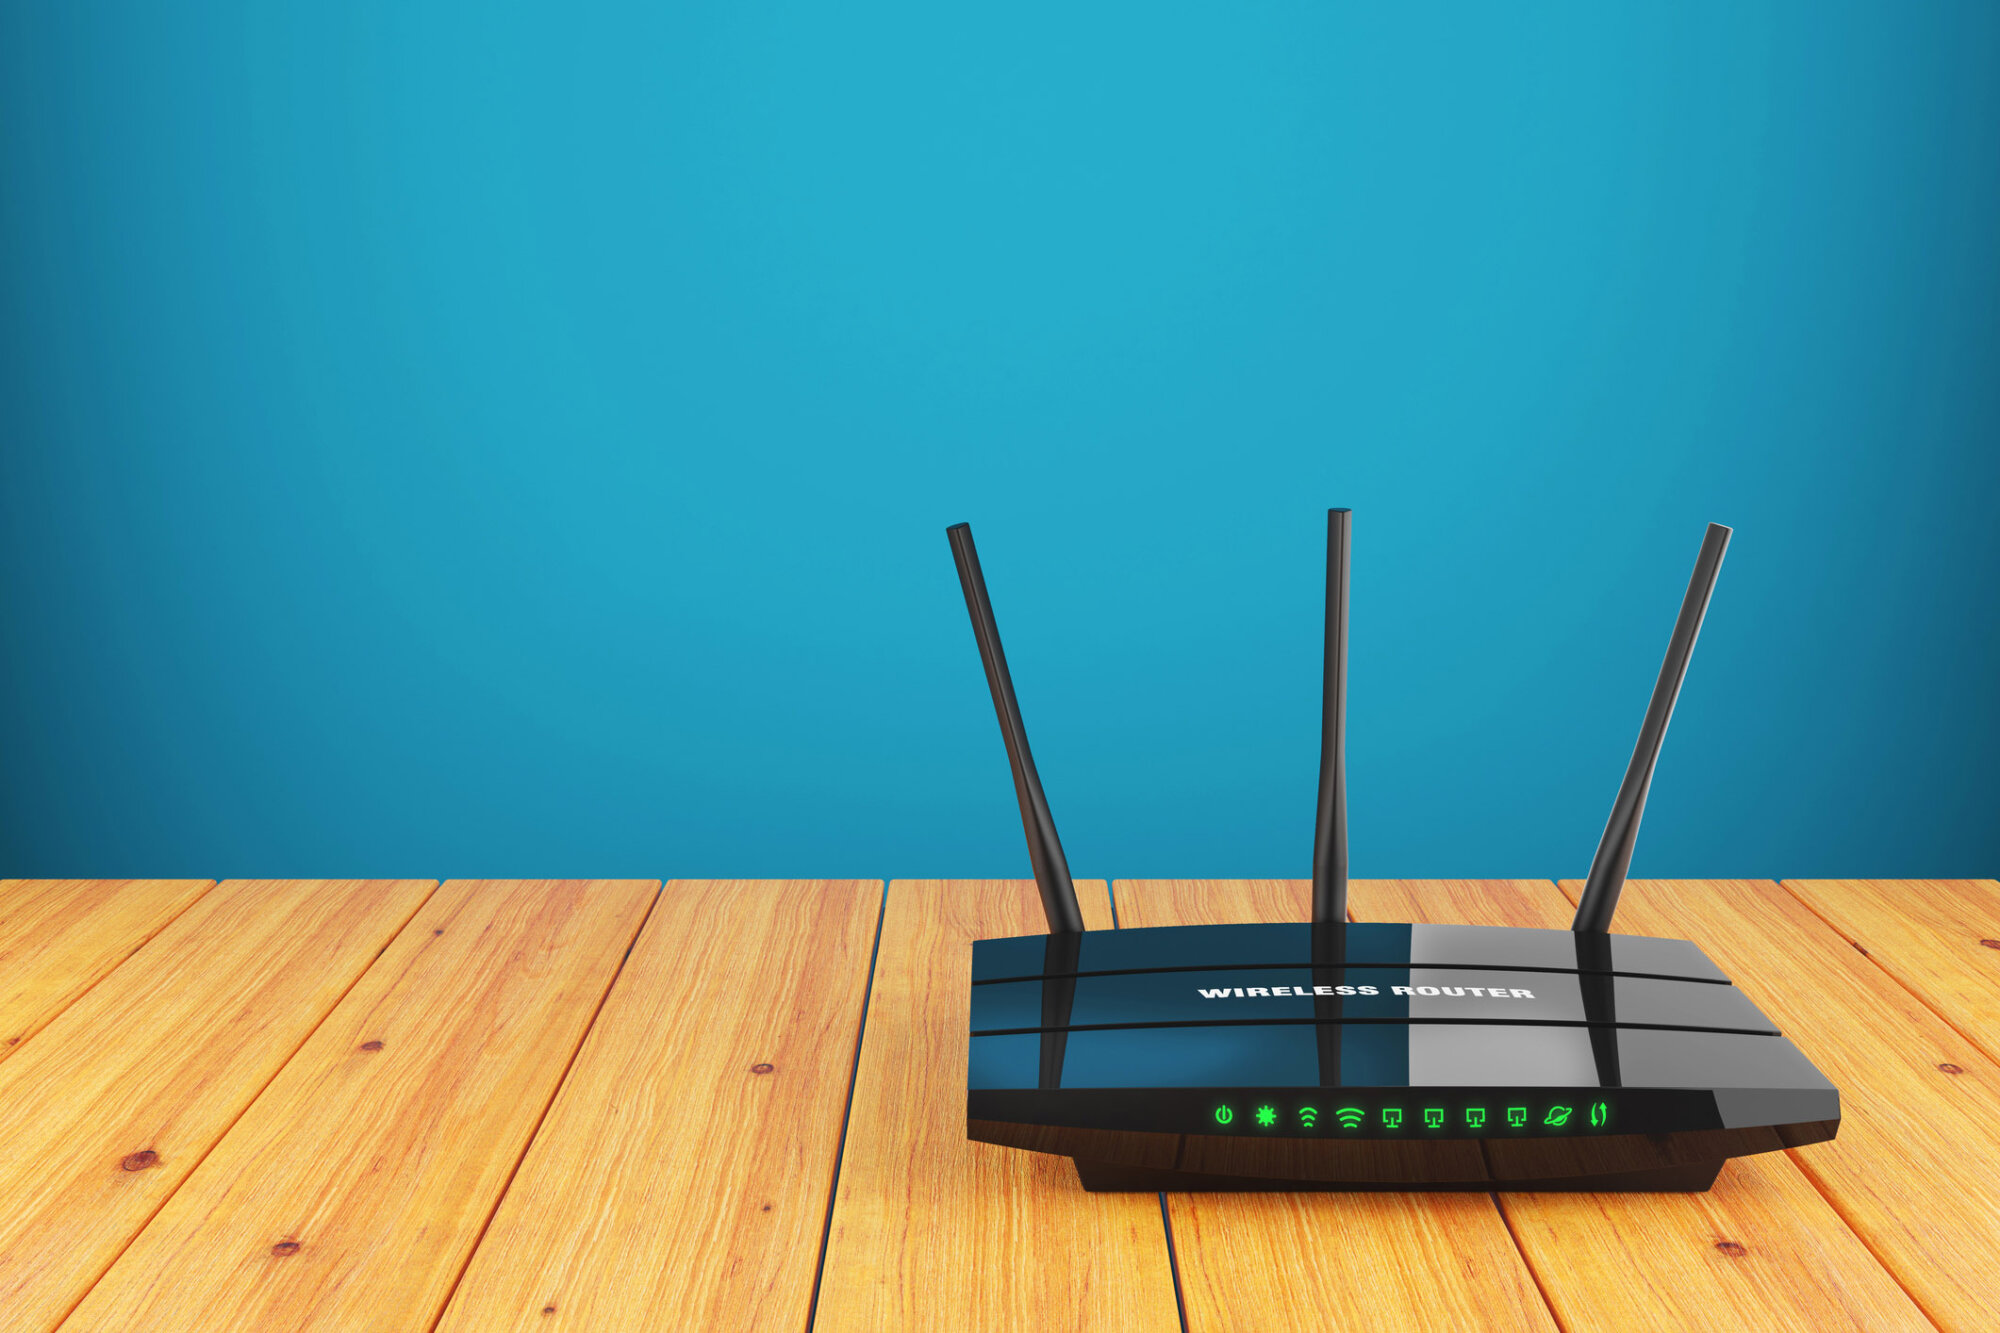 This is a photo of a wireless router on wood flooring.